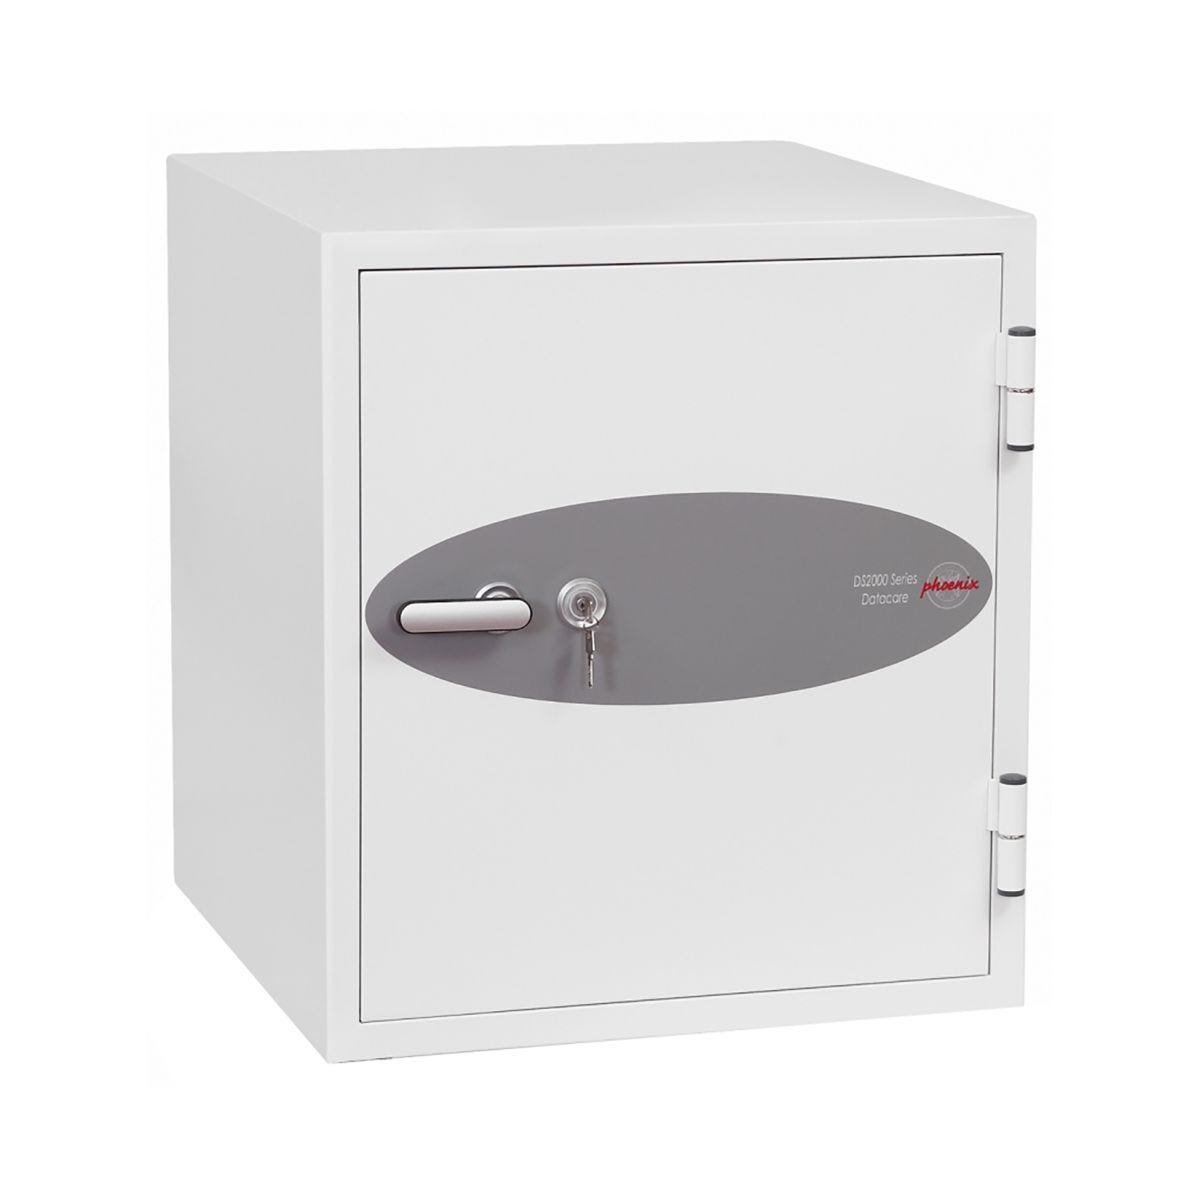 Phoenix Datacare DS2003K Data Safe with Key Lock Size 3